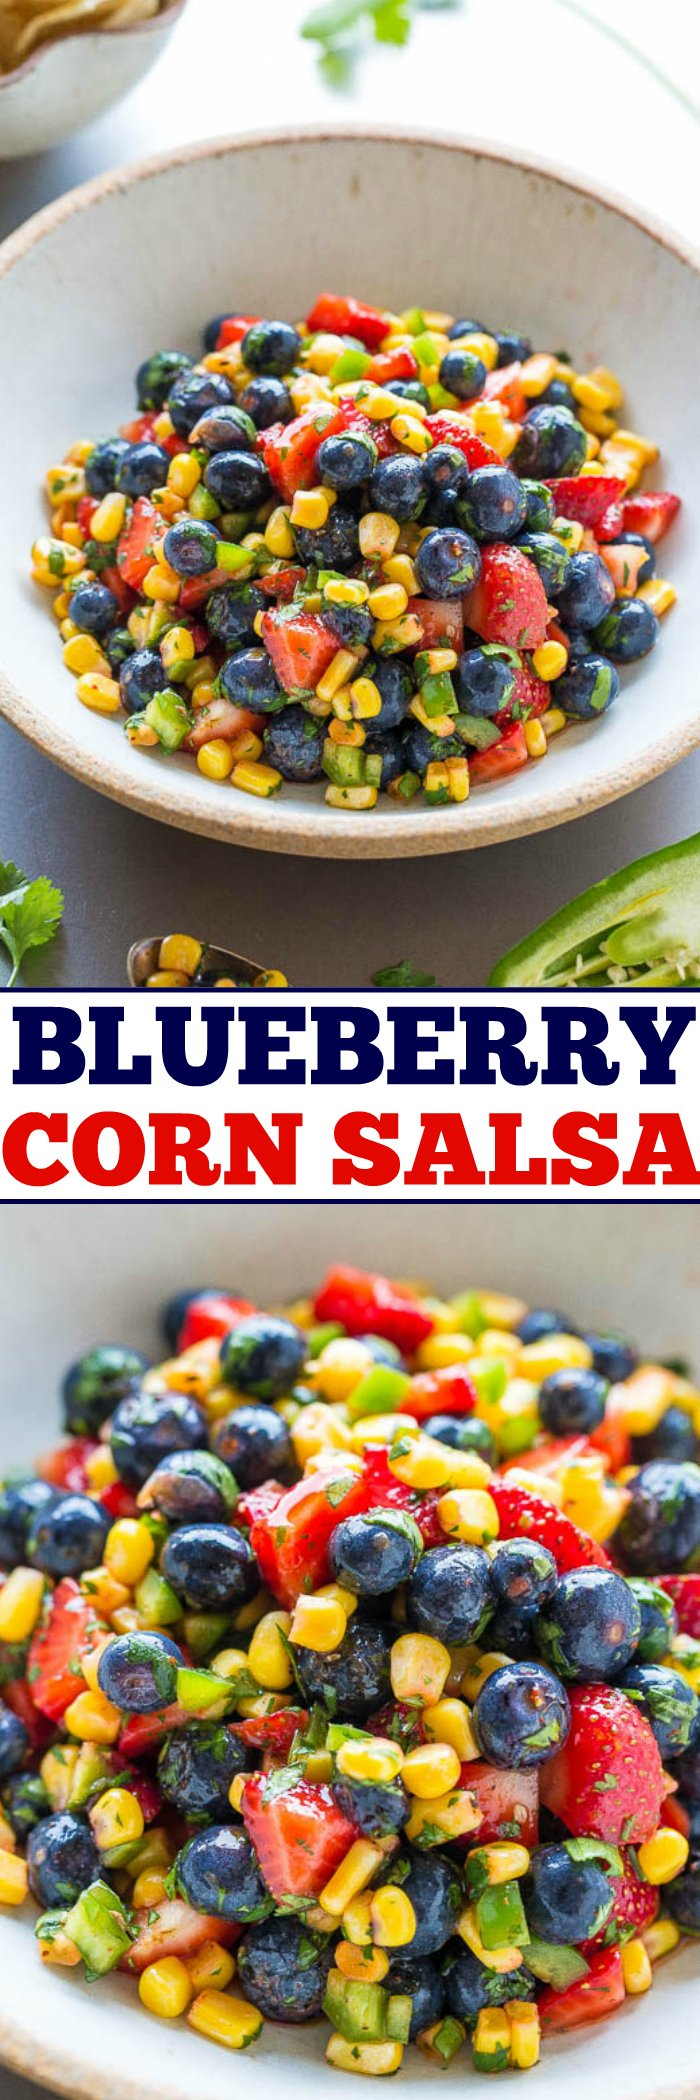 Corn and Blueberry Salsa — Berries, corn, jalapeno, cilantro, and more in this EASY and healthy salsa that's ready in 5 minutes!! So good you can eat it on it's own like a salad! The sweet fruit balances the heat and it's a guaranteed HIT!!